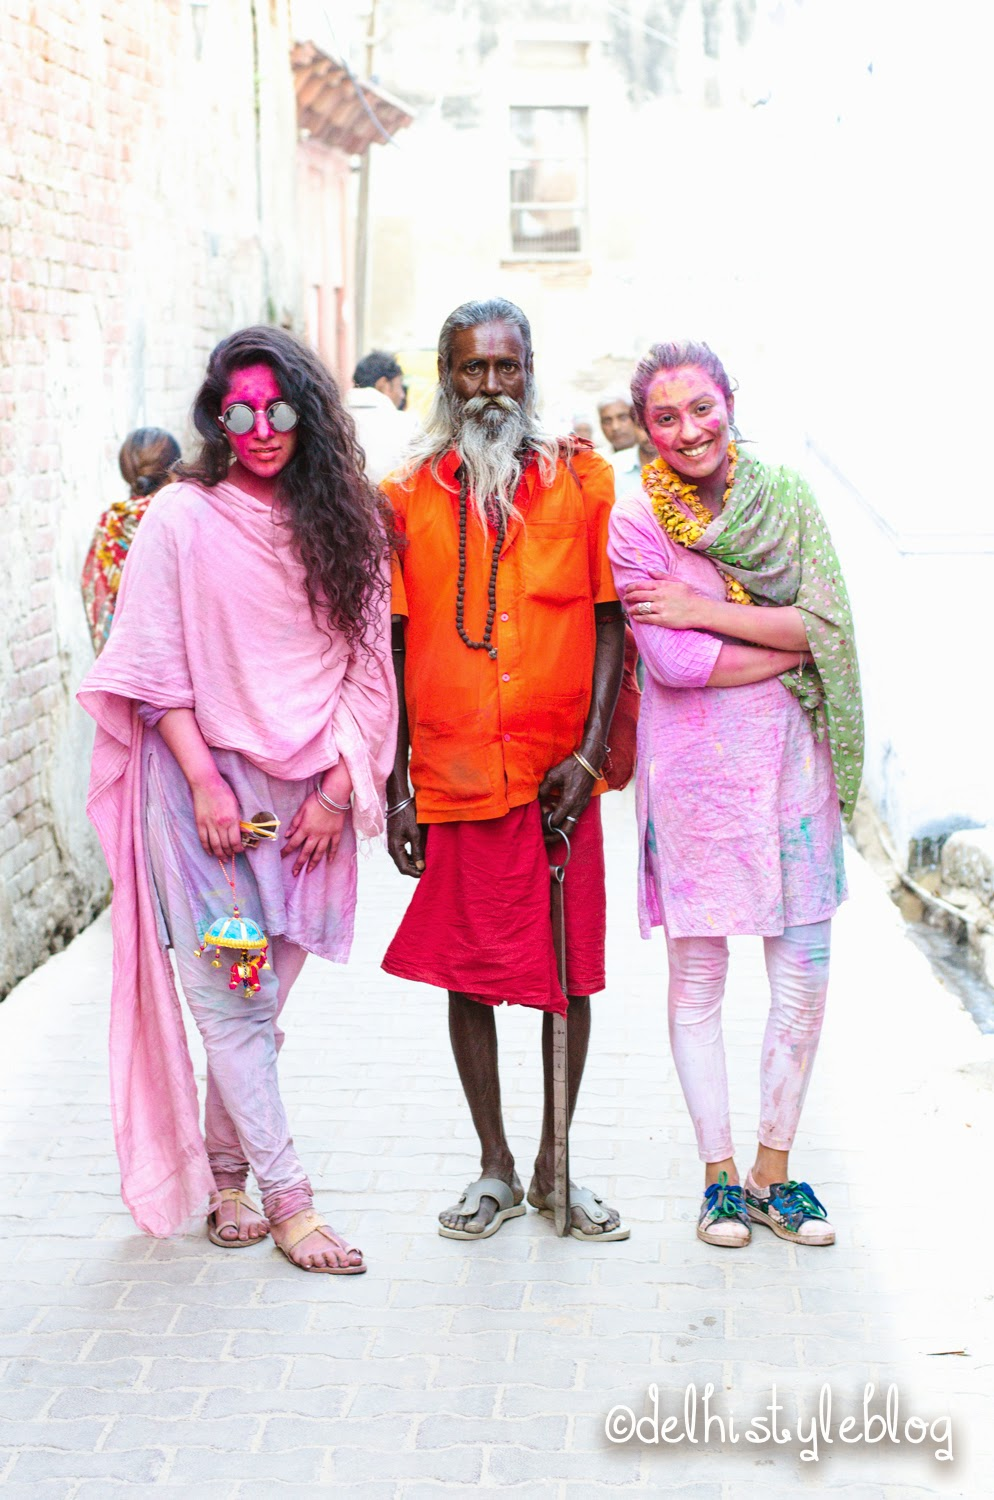 The Filmy Owl Angel Bedi Sadhu and Aanchal Sukhija